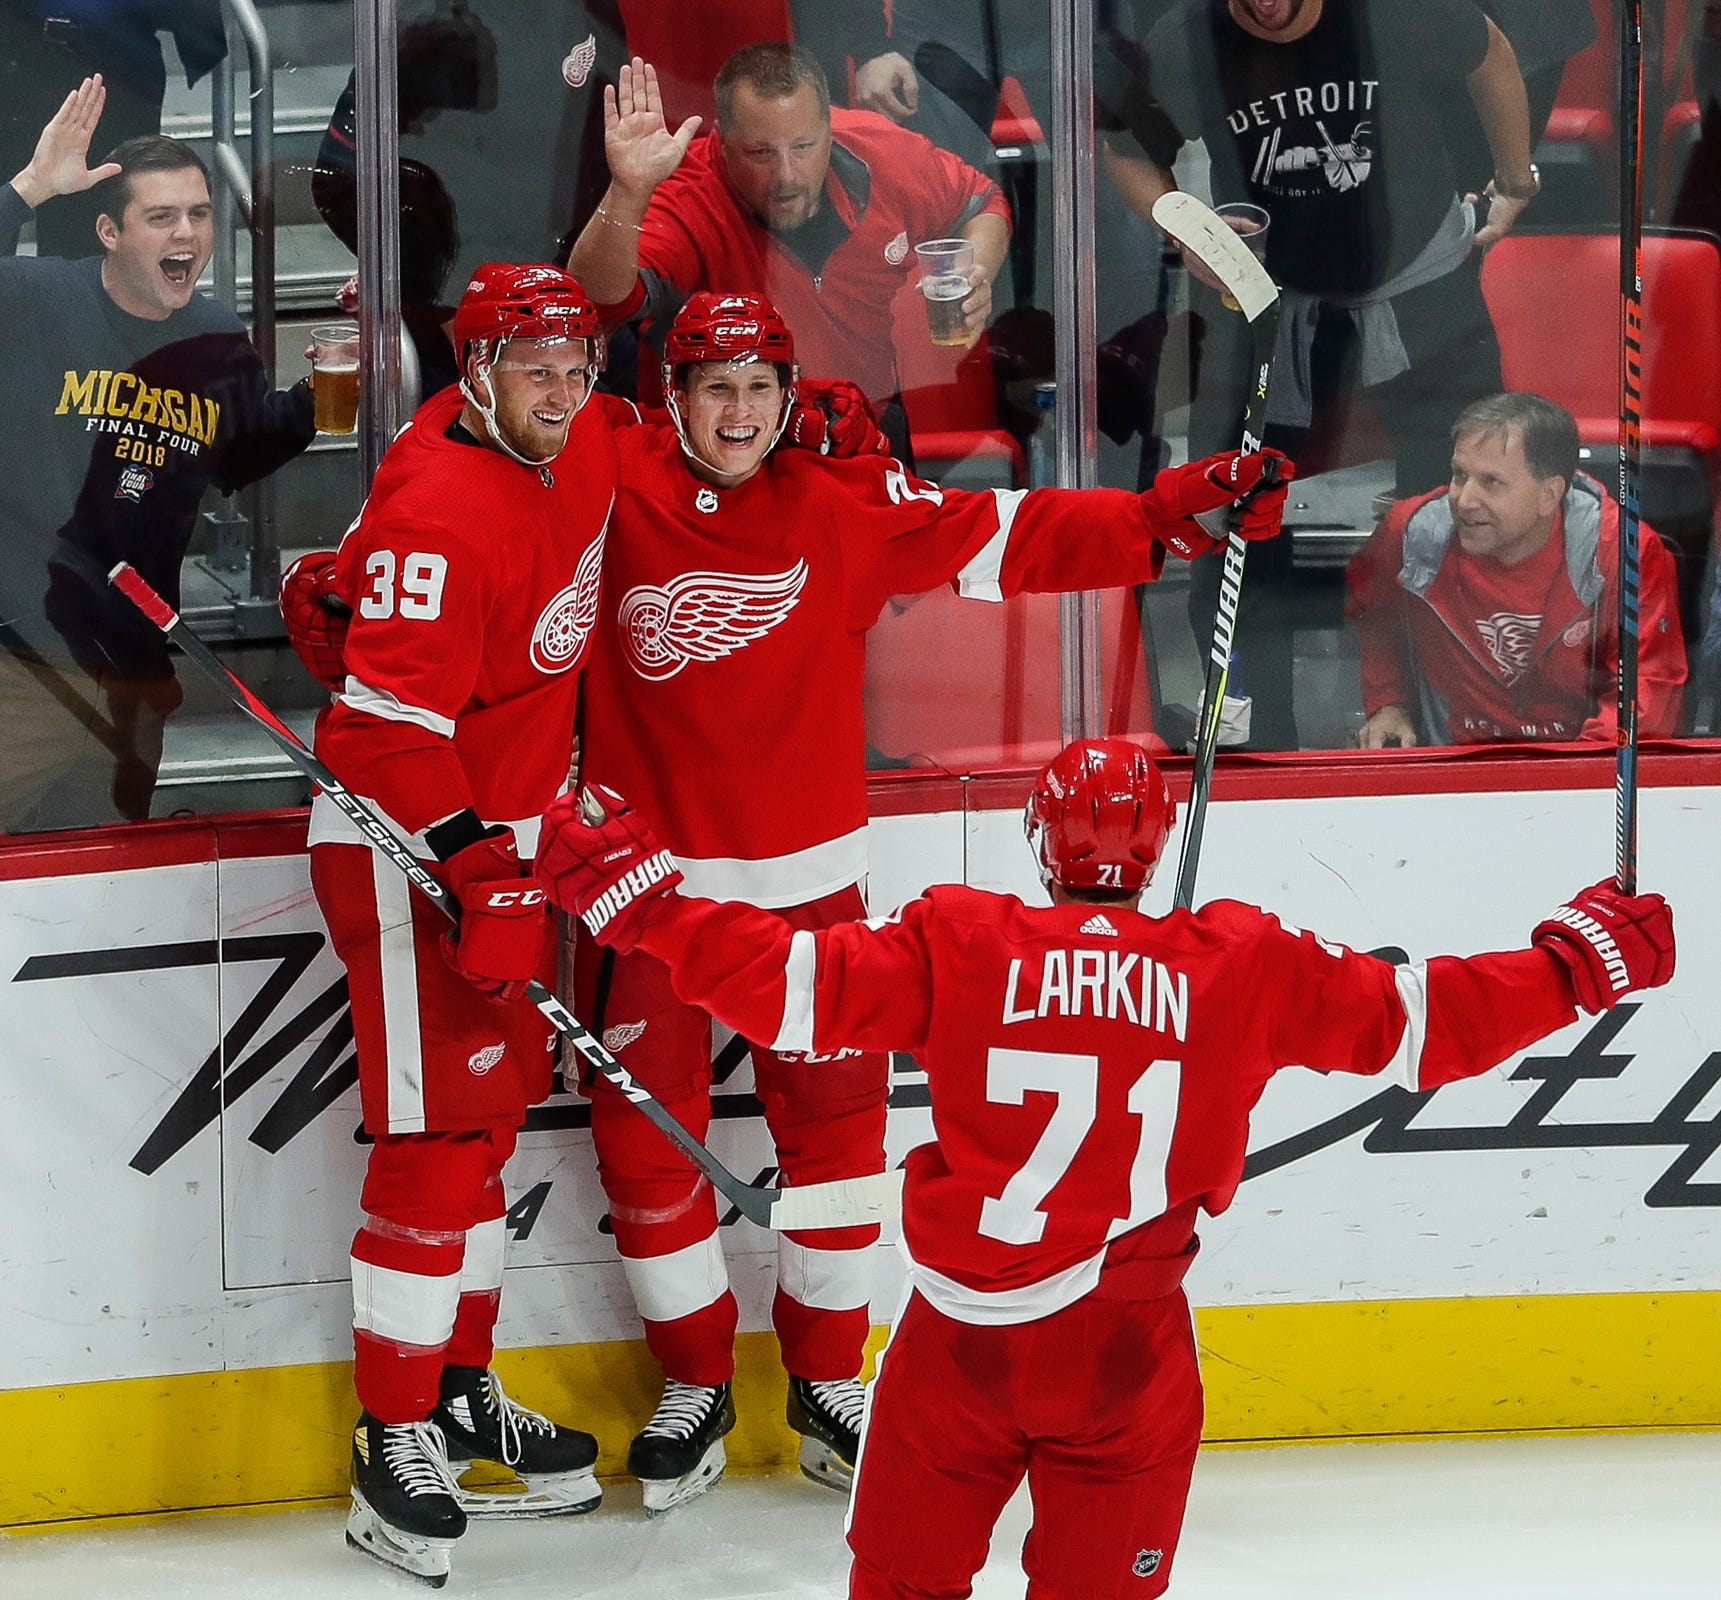 Red Wings forward Anthony Mantha (39), defenseman Dennis Cholowski (21) and forward Dylan Larkin (71) celebrate Cholowski's goal against the Blue Jackets during the second period at Little Caesars Arena on Thursday, October 4, 2018.